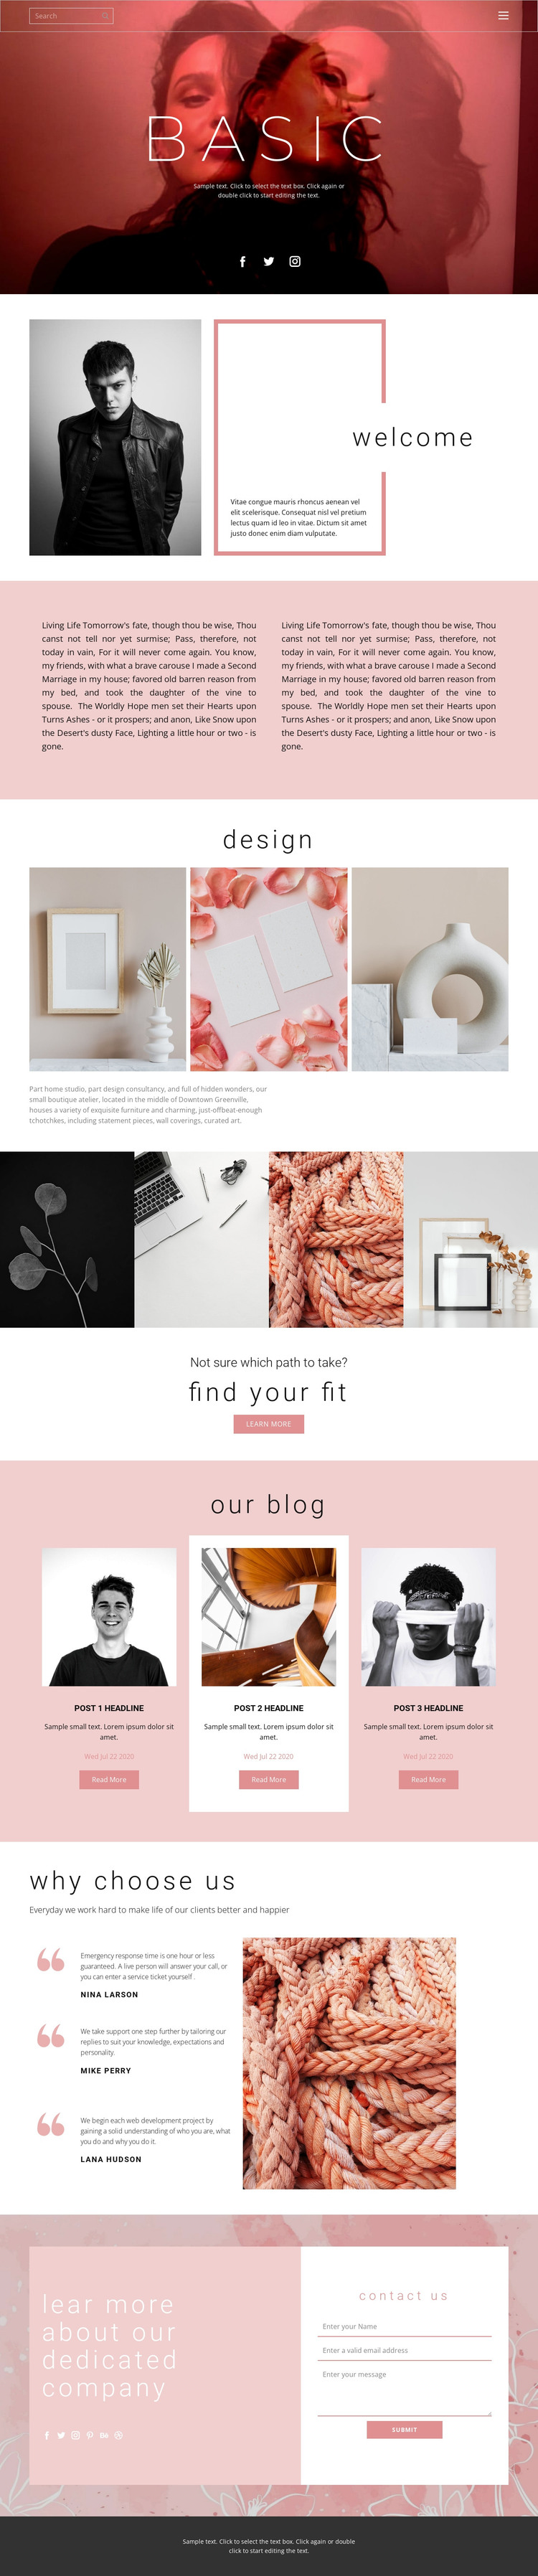 Fashion trends this year Web Design